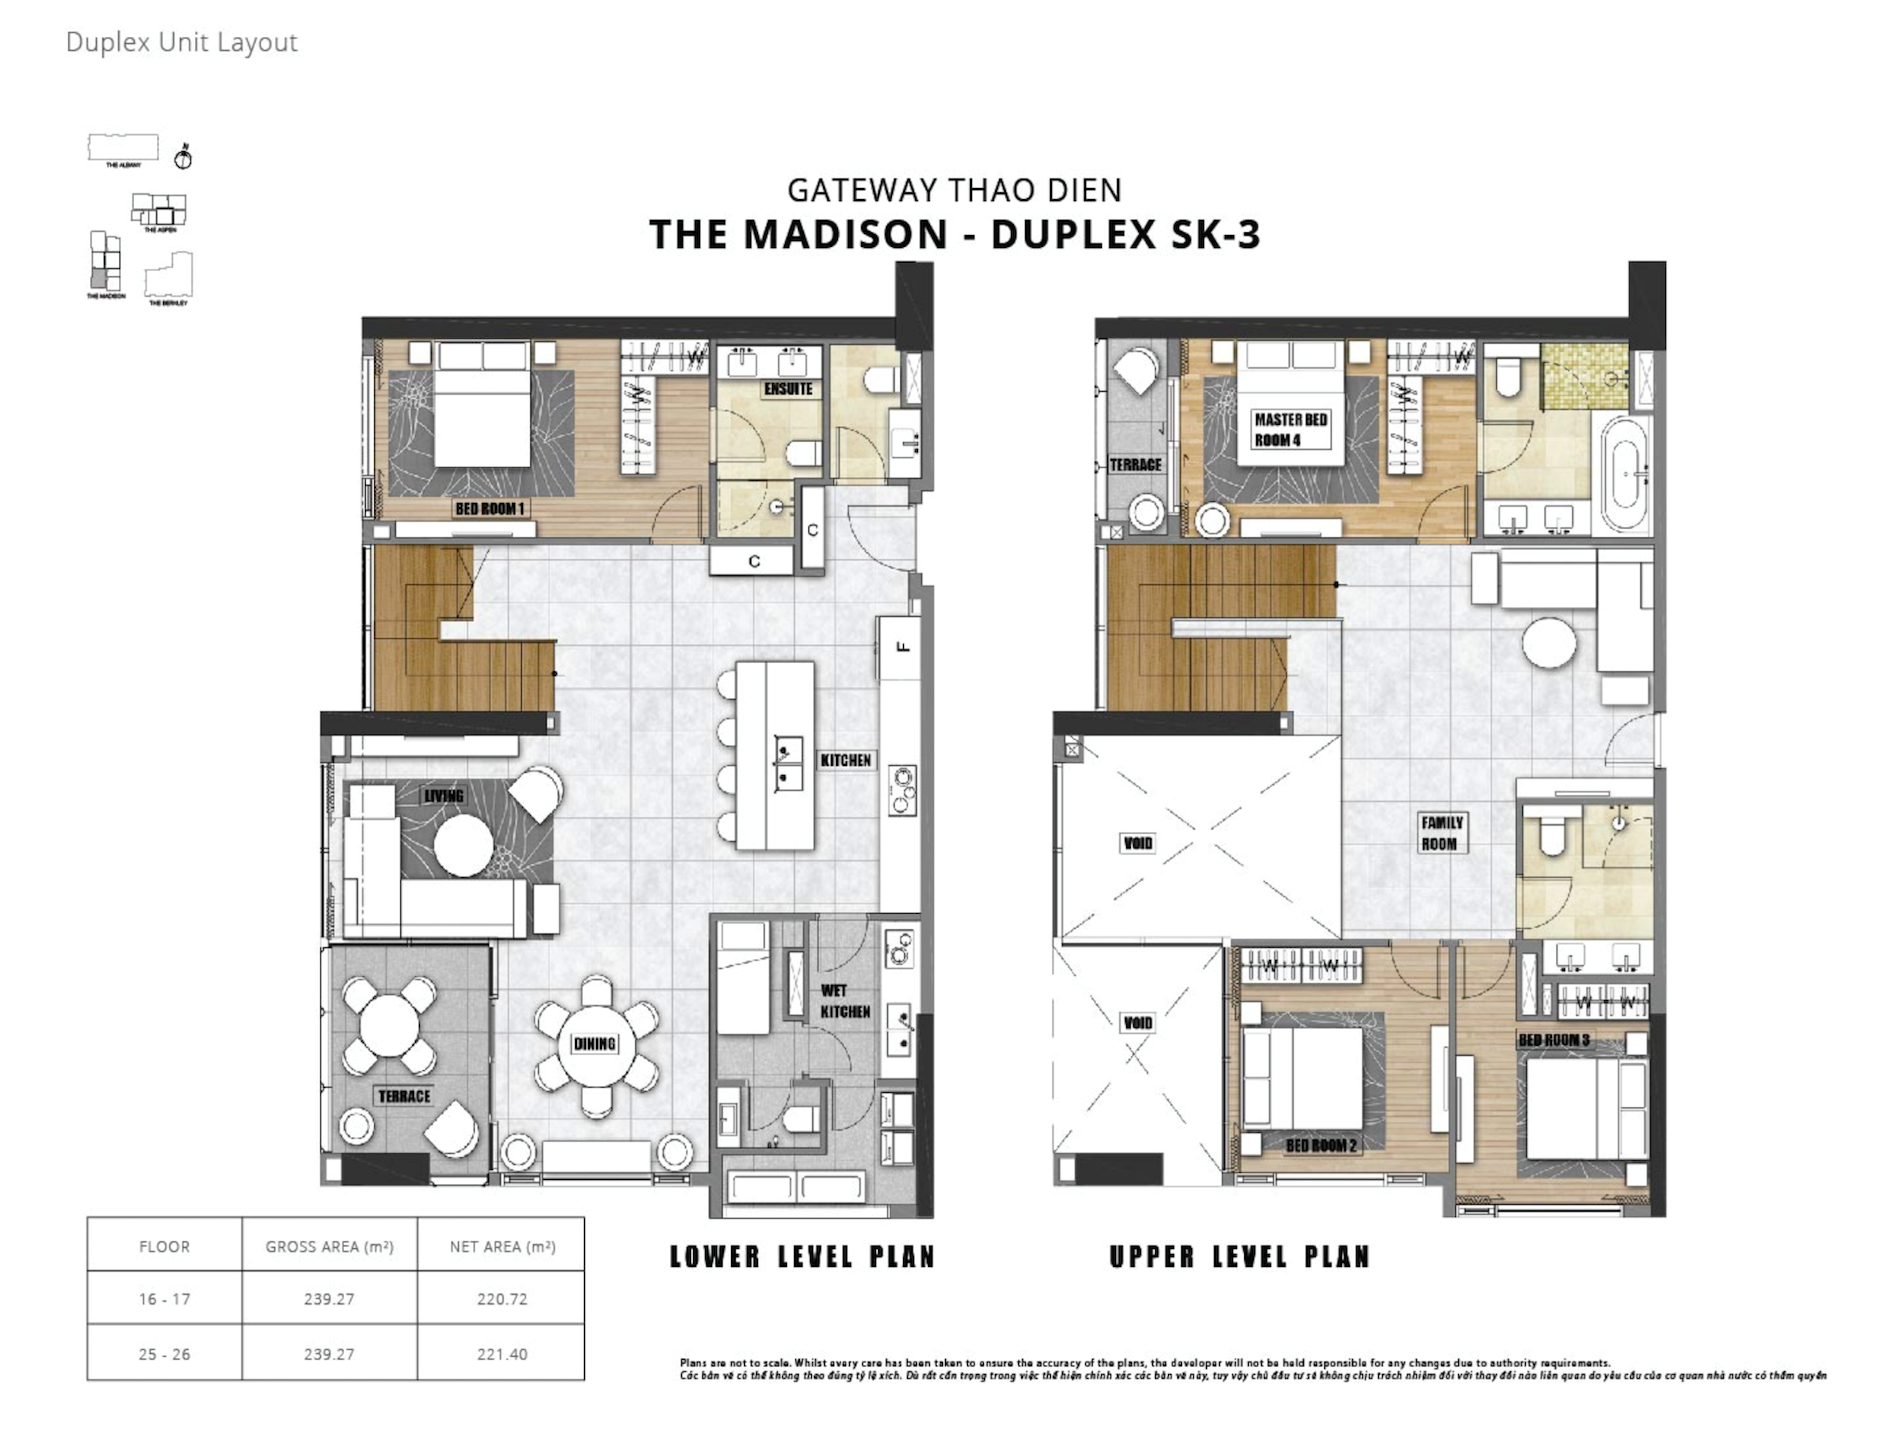 https://saos.vn/Uploads/t/pe/penthouse-gateway-thao-dien-duplex-the-madison-sk-3_0014025.png